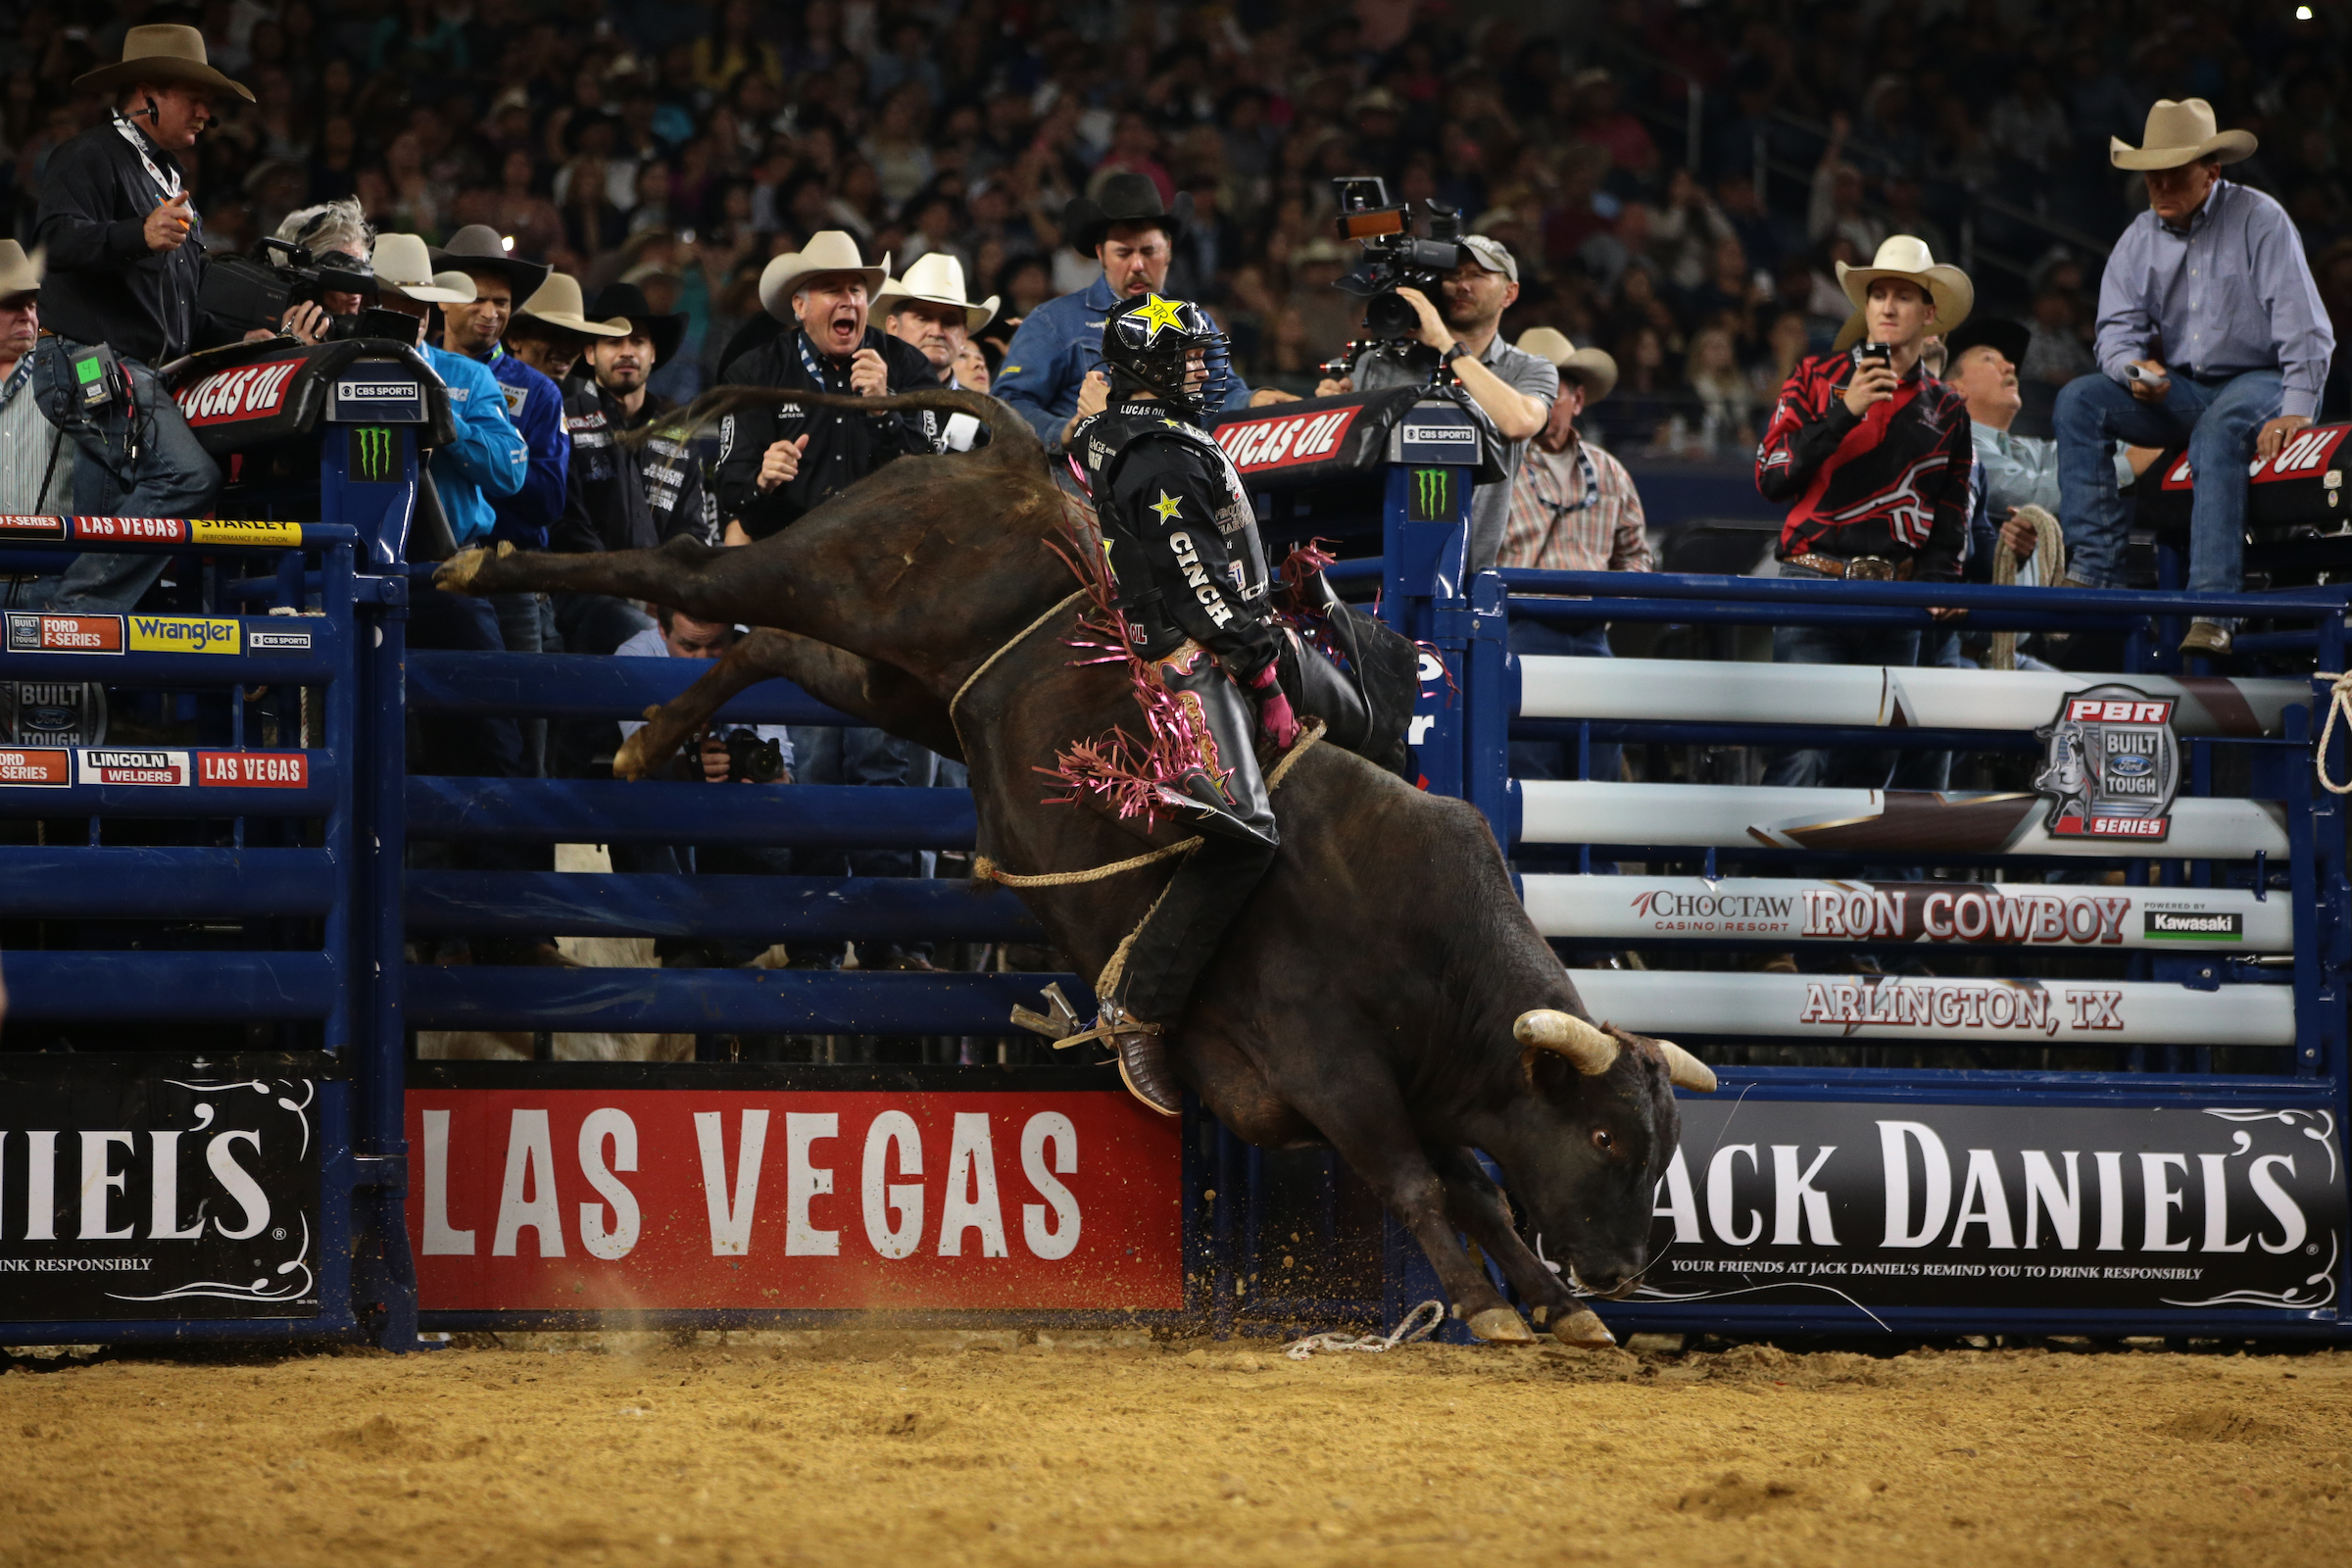 PBR's Iron Cowboy returns to AT&T Stadium